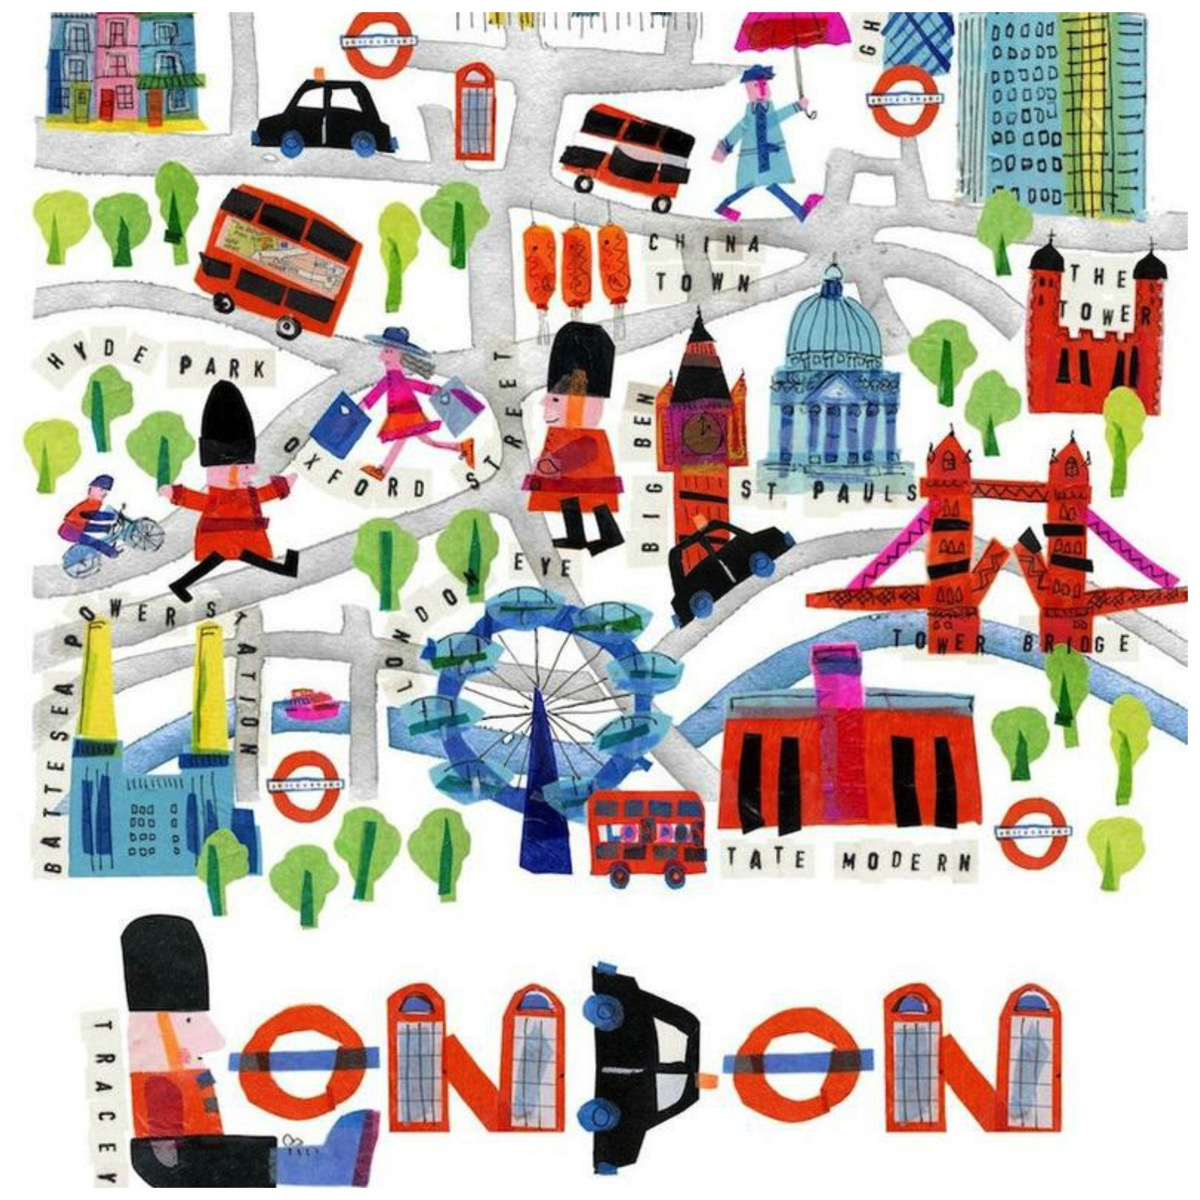 Colorful london artwork from tracey english